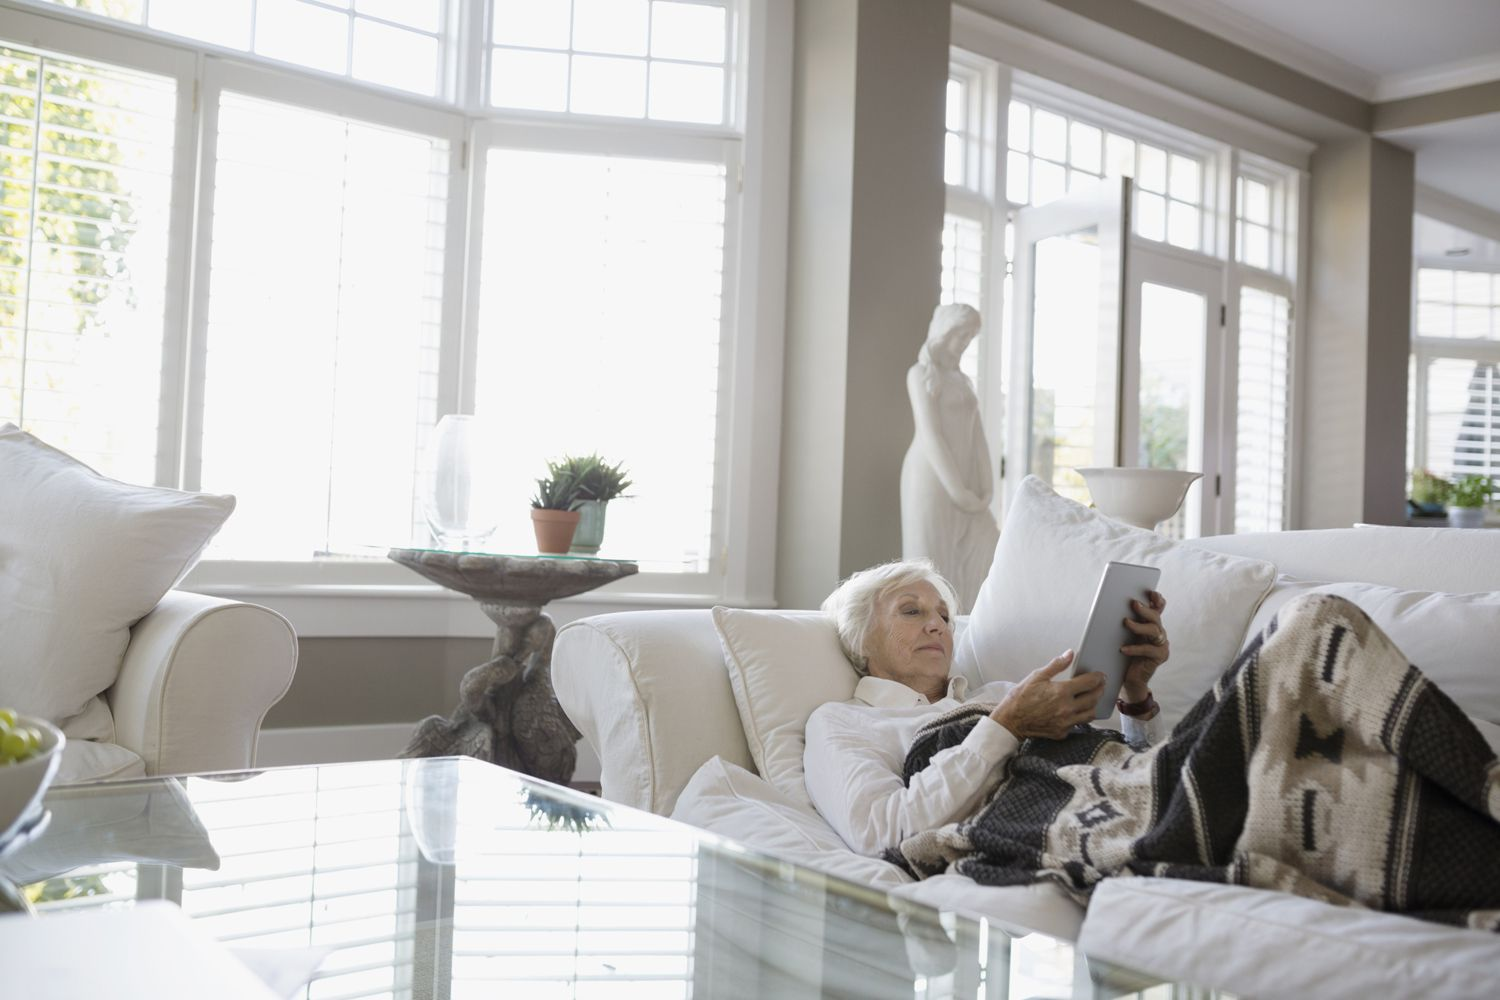 Older woman laying on a couch using a tablet